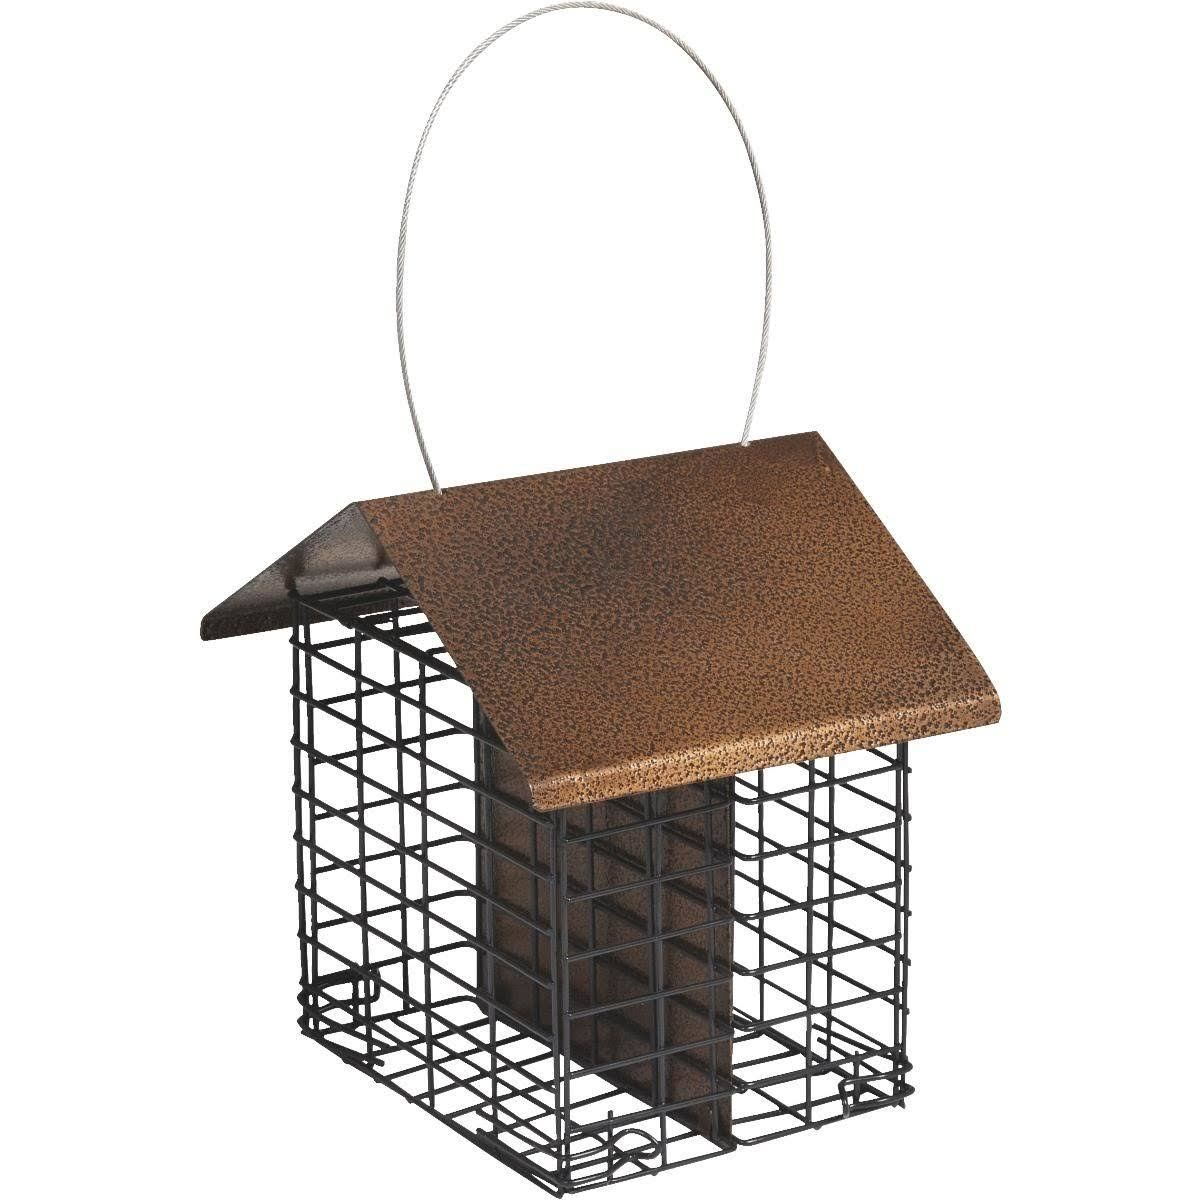 Best Garden Double Suet Cake Feeder - XFIM-023